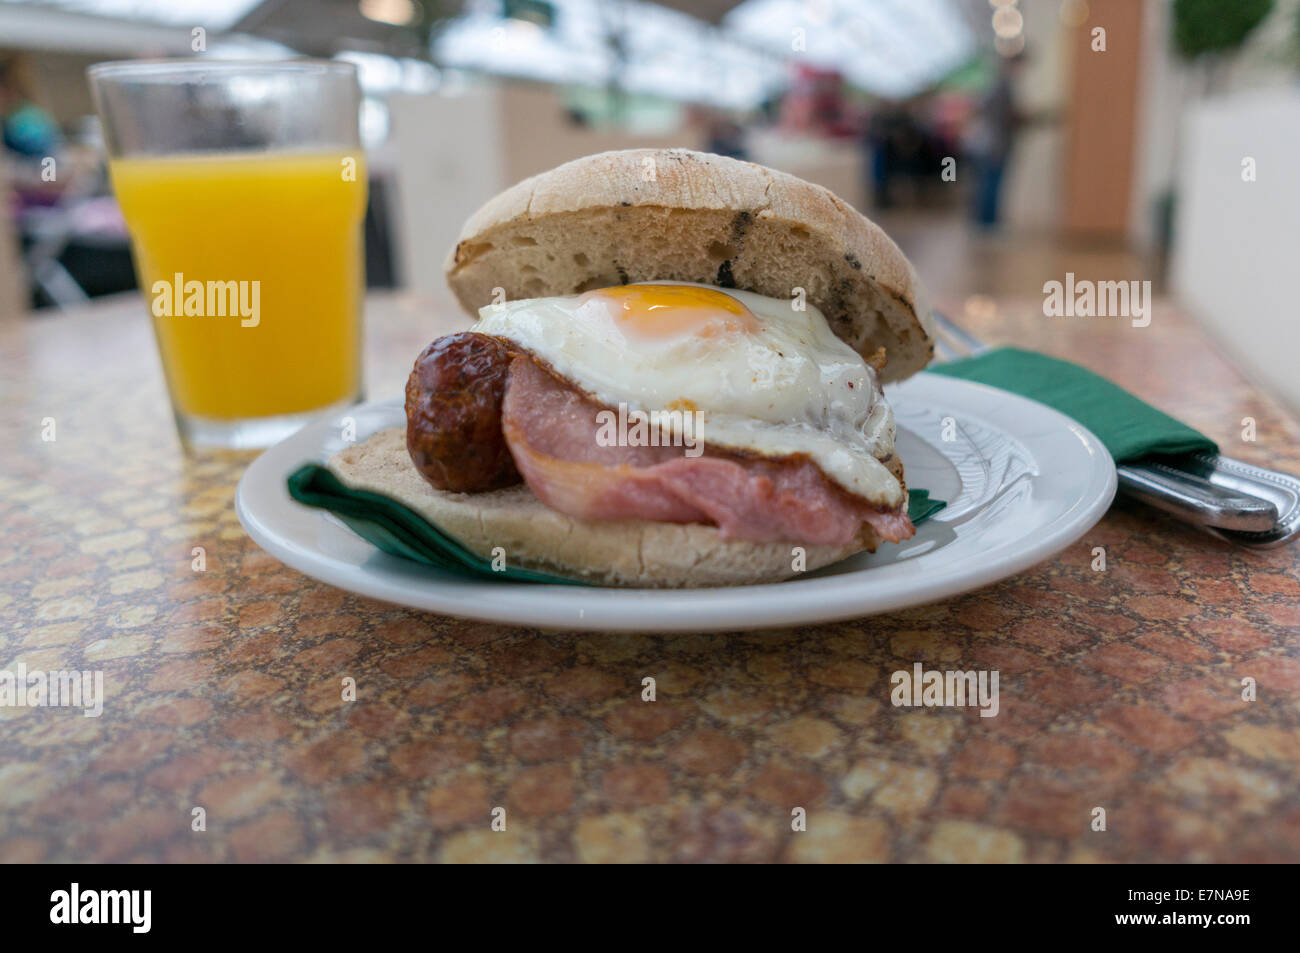 Sough dough breakfast roll - Stock Image